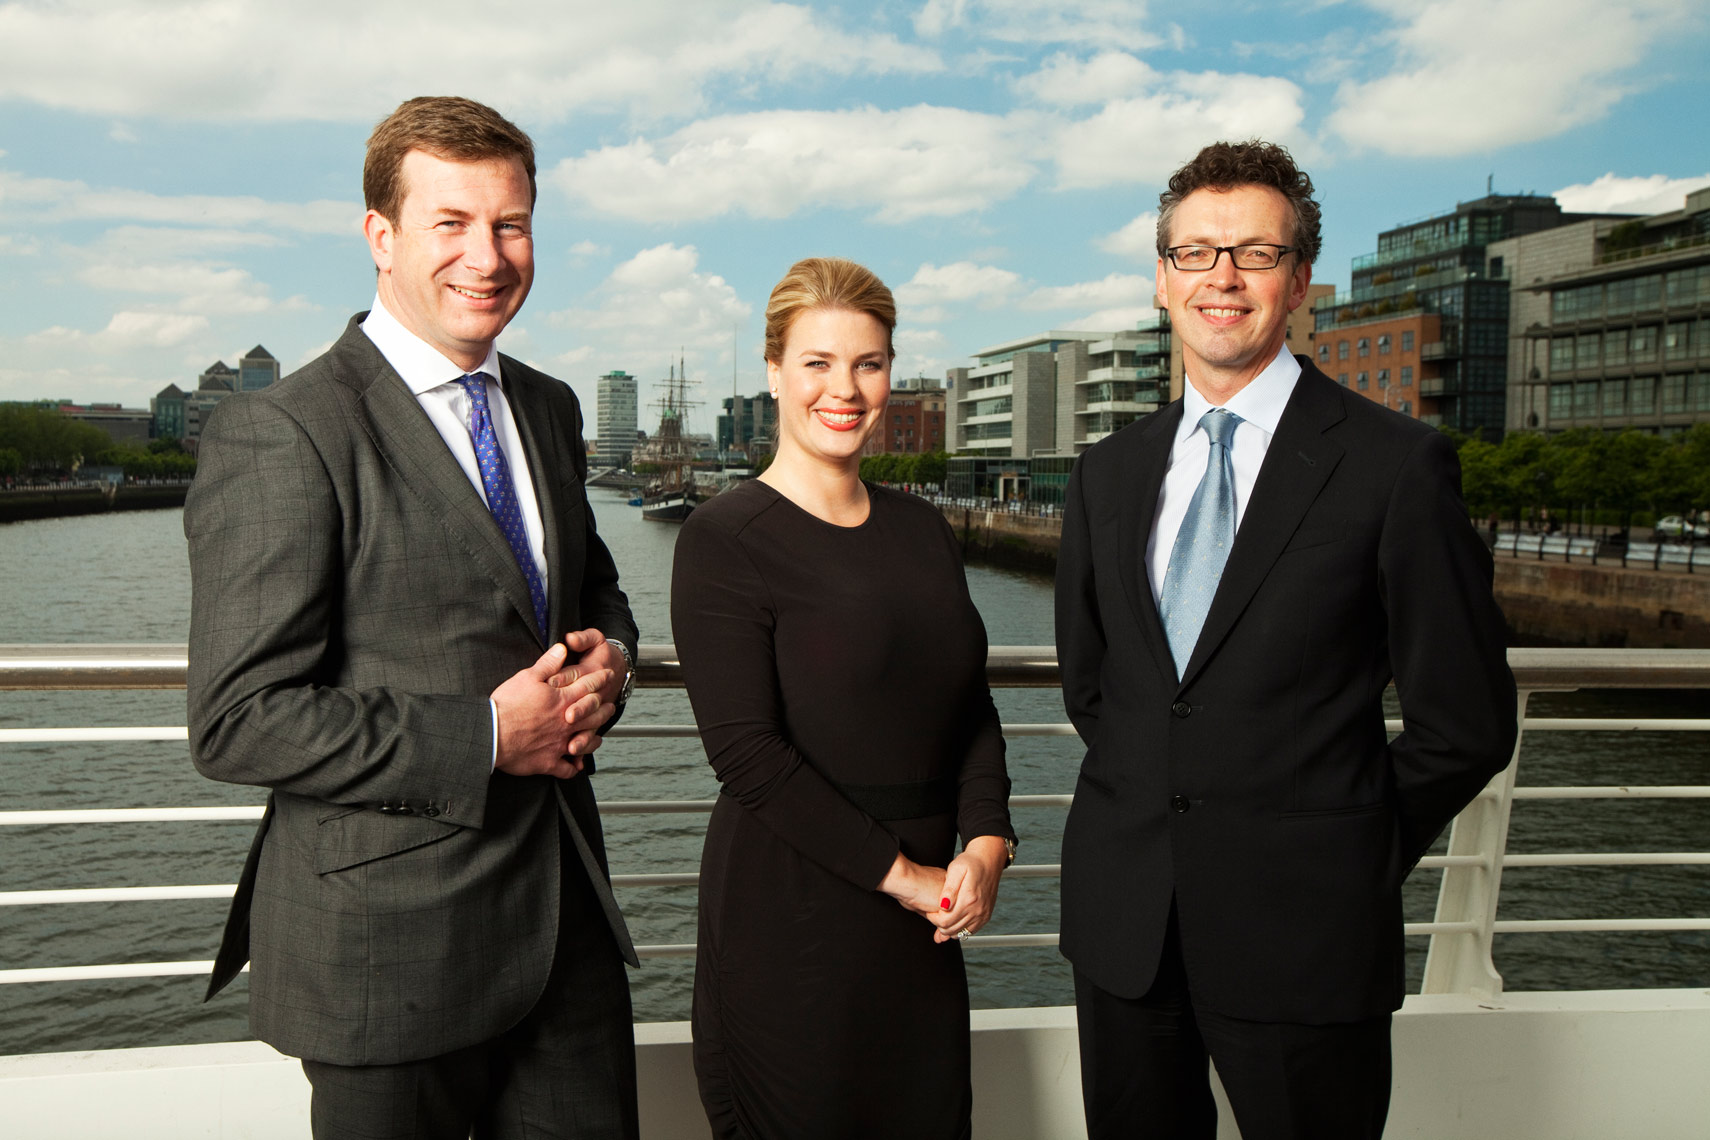 three people in suits stand on city bridge for corporate portrait